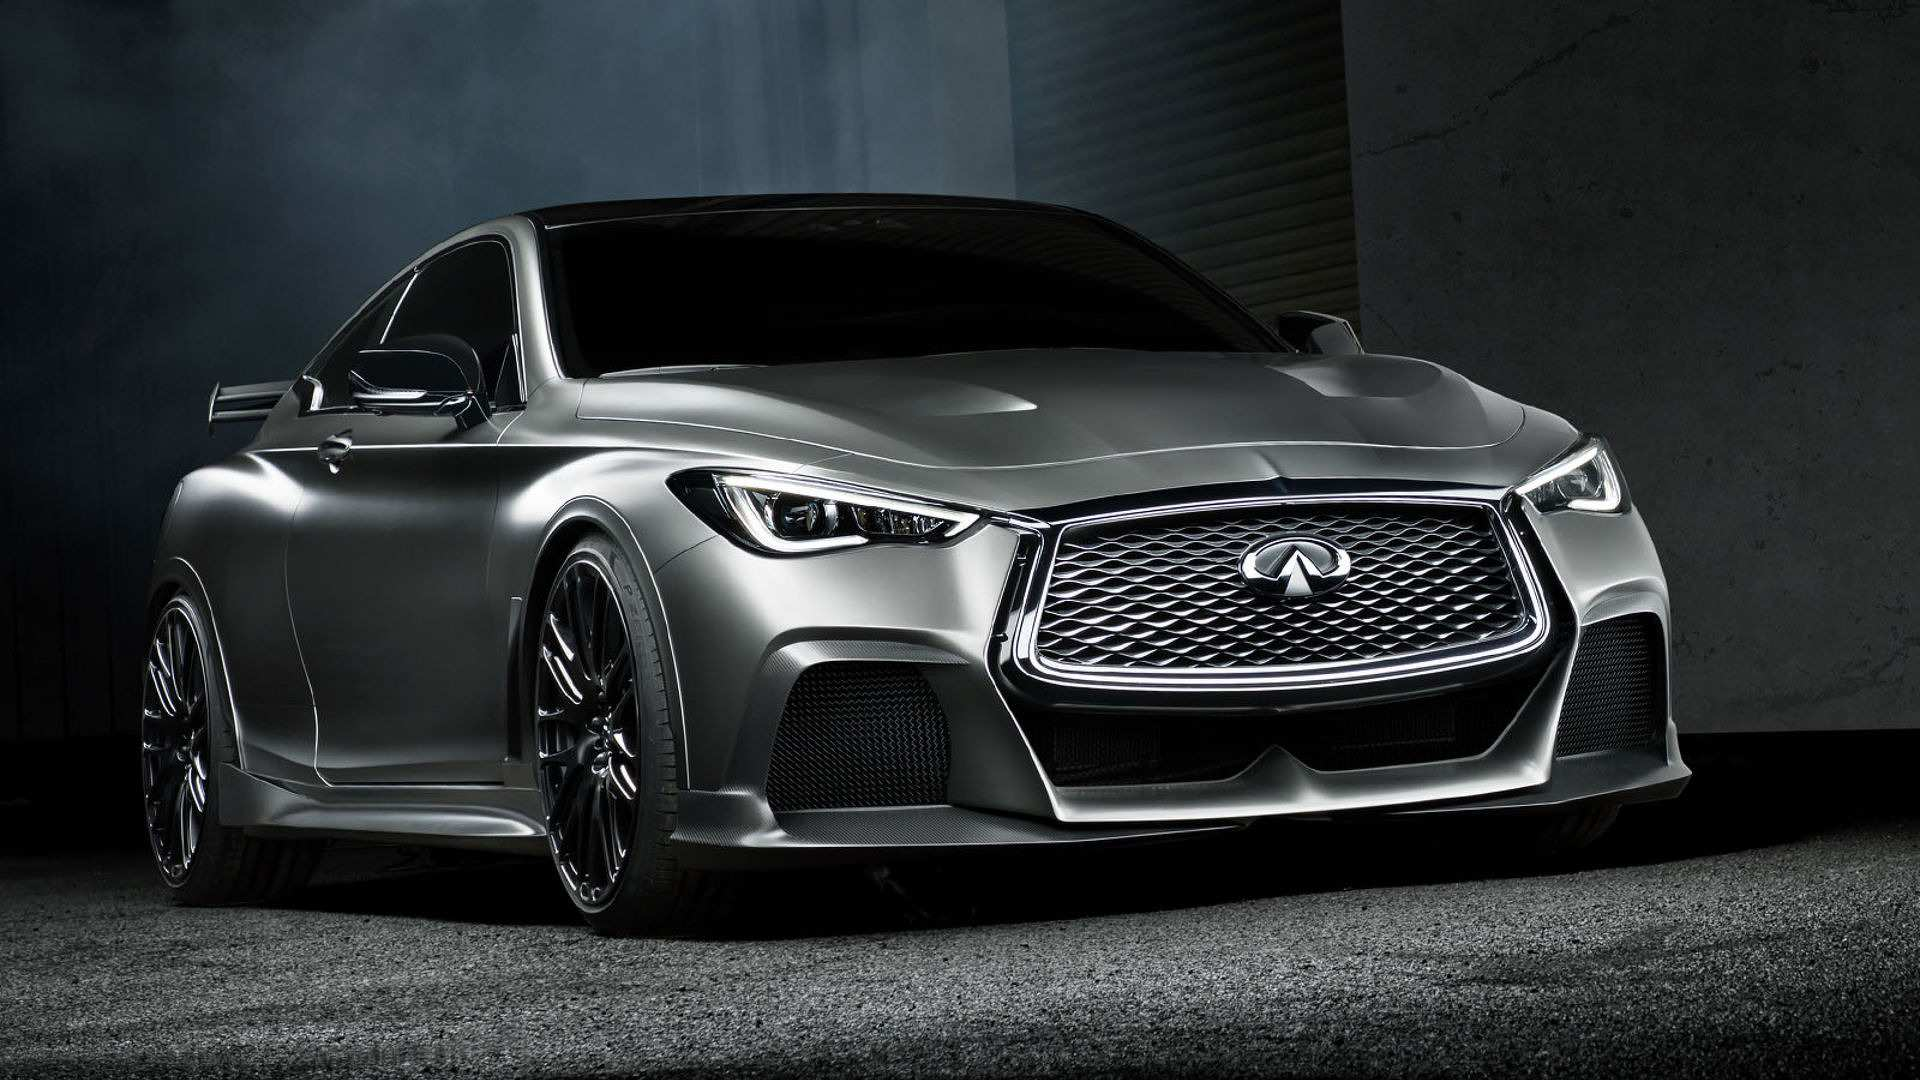 54 Concept of 2020 Infiniti Q60 Price Specs with 2020 Infiniti Q60 Price